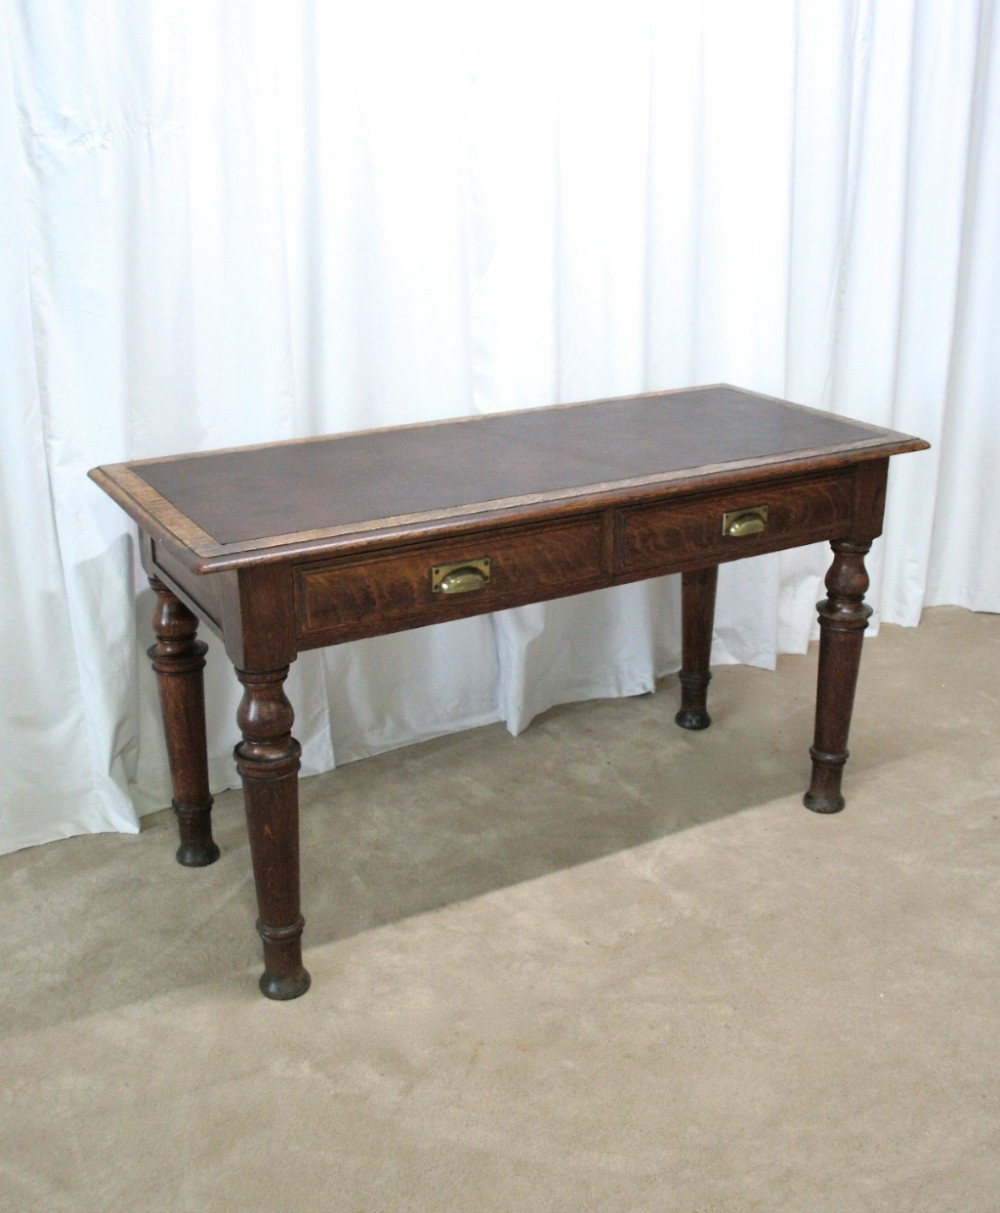 gillows writing table